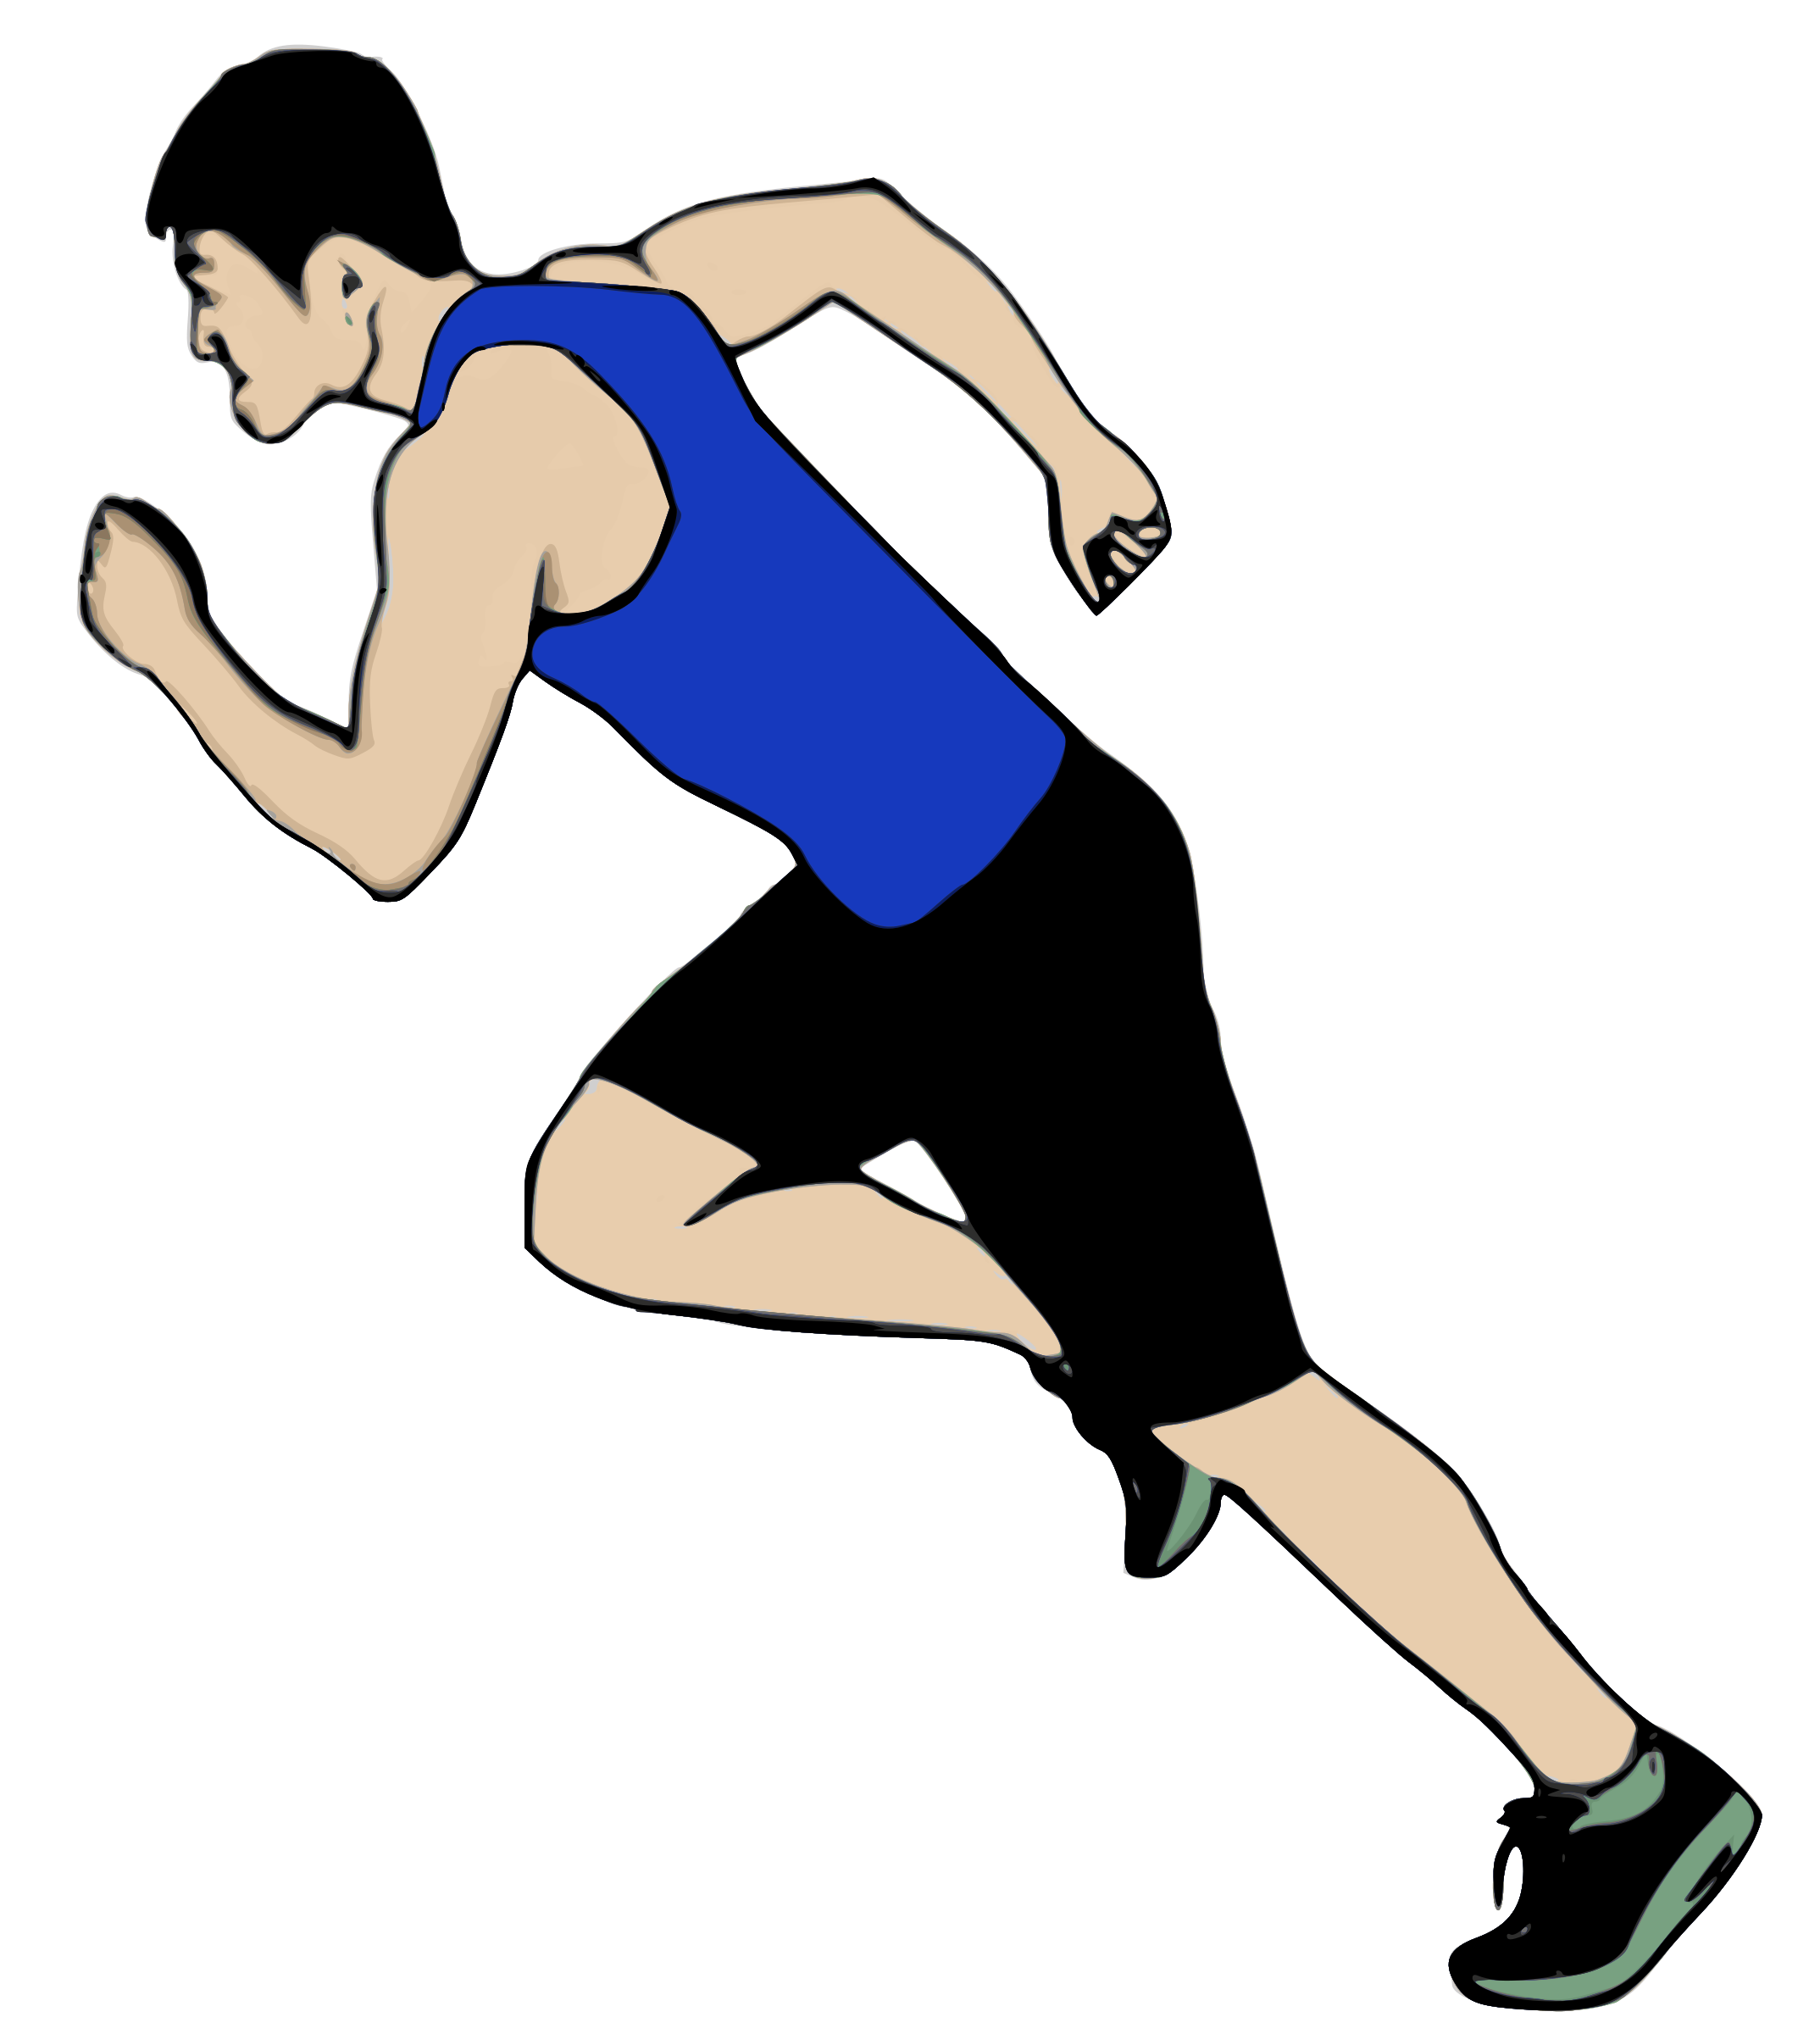 Clipart runner png. Big image